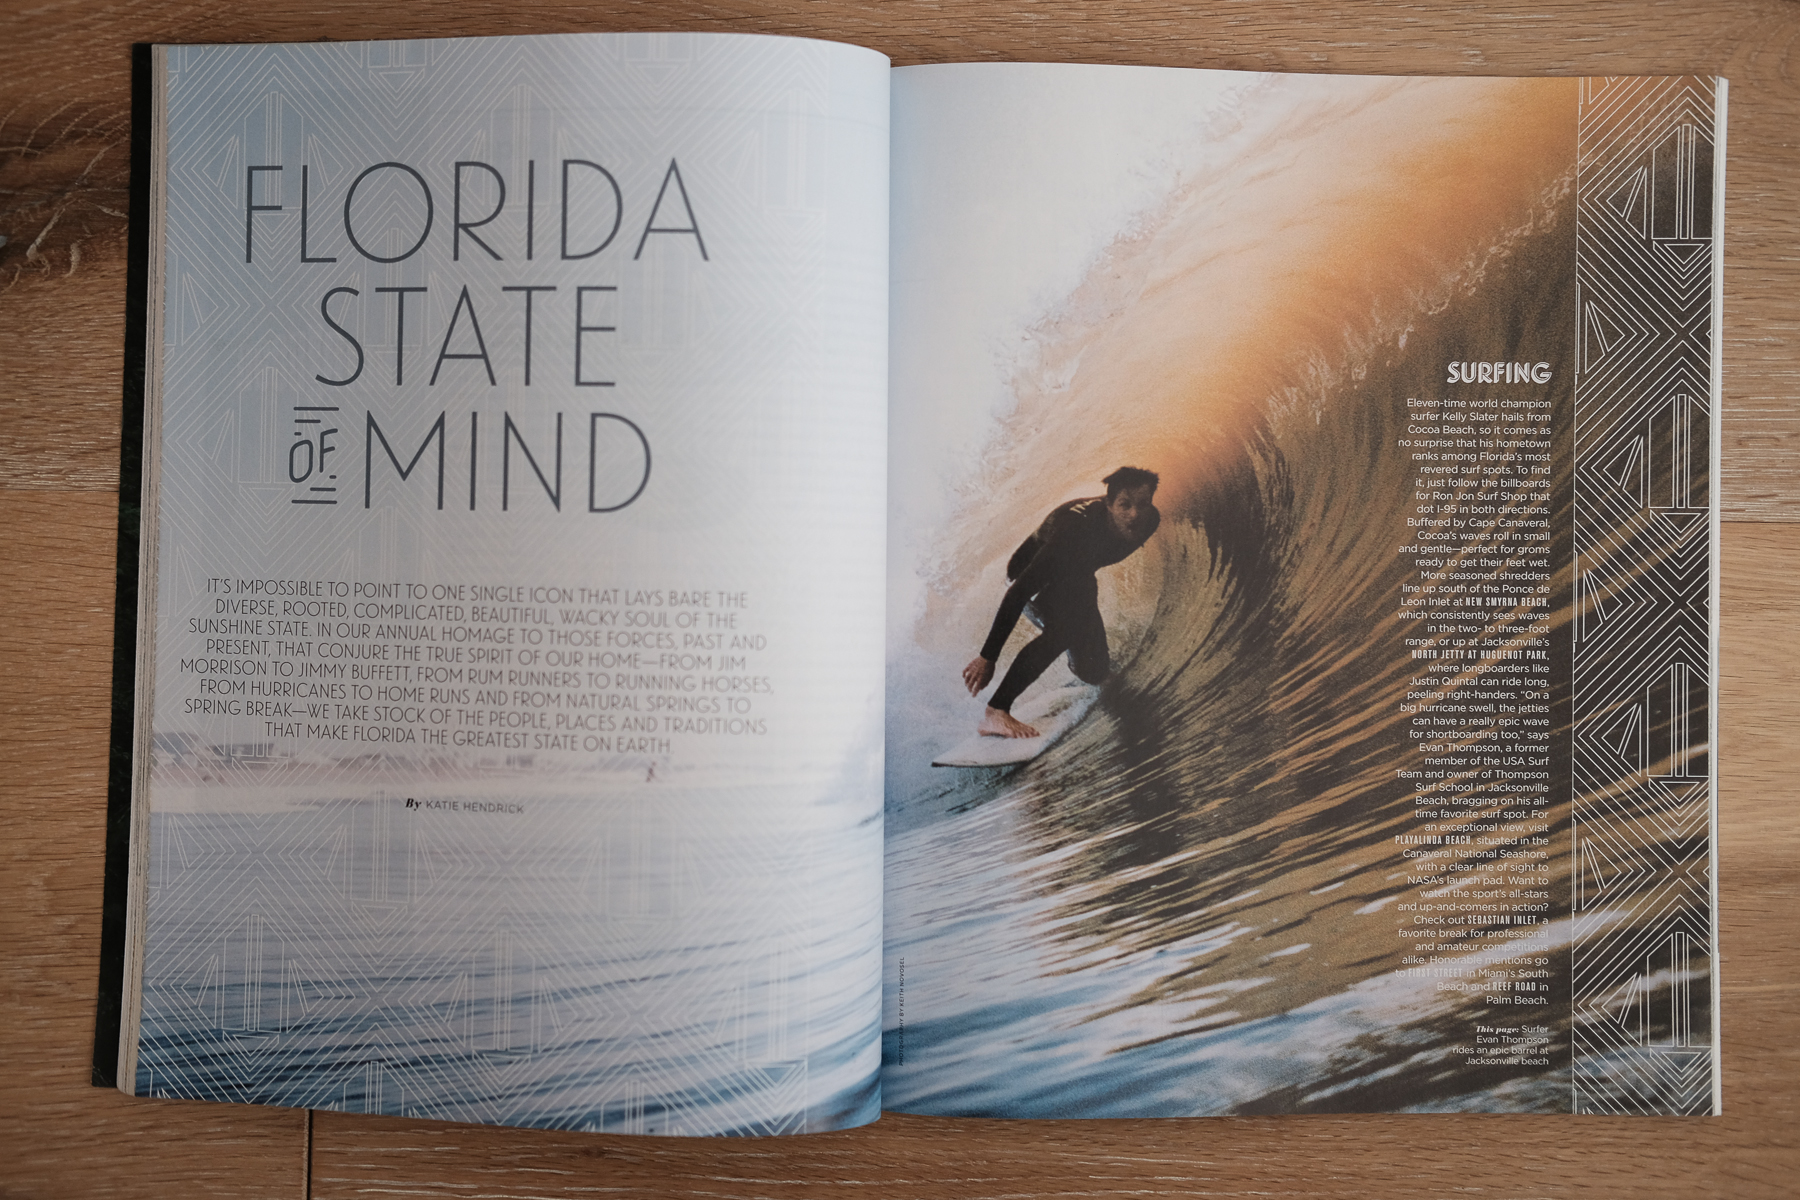 Flamingo Magazine, FL. Surfer: Evan Thompson